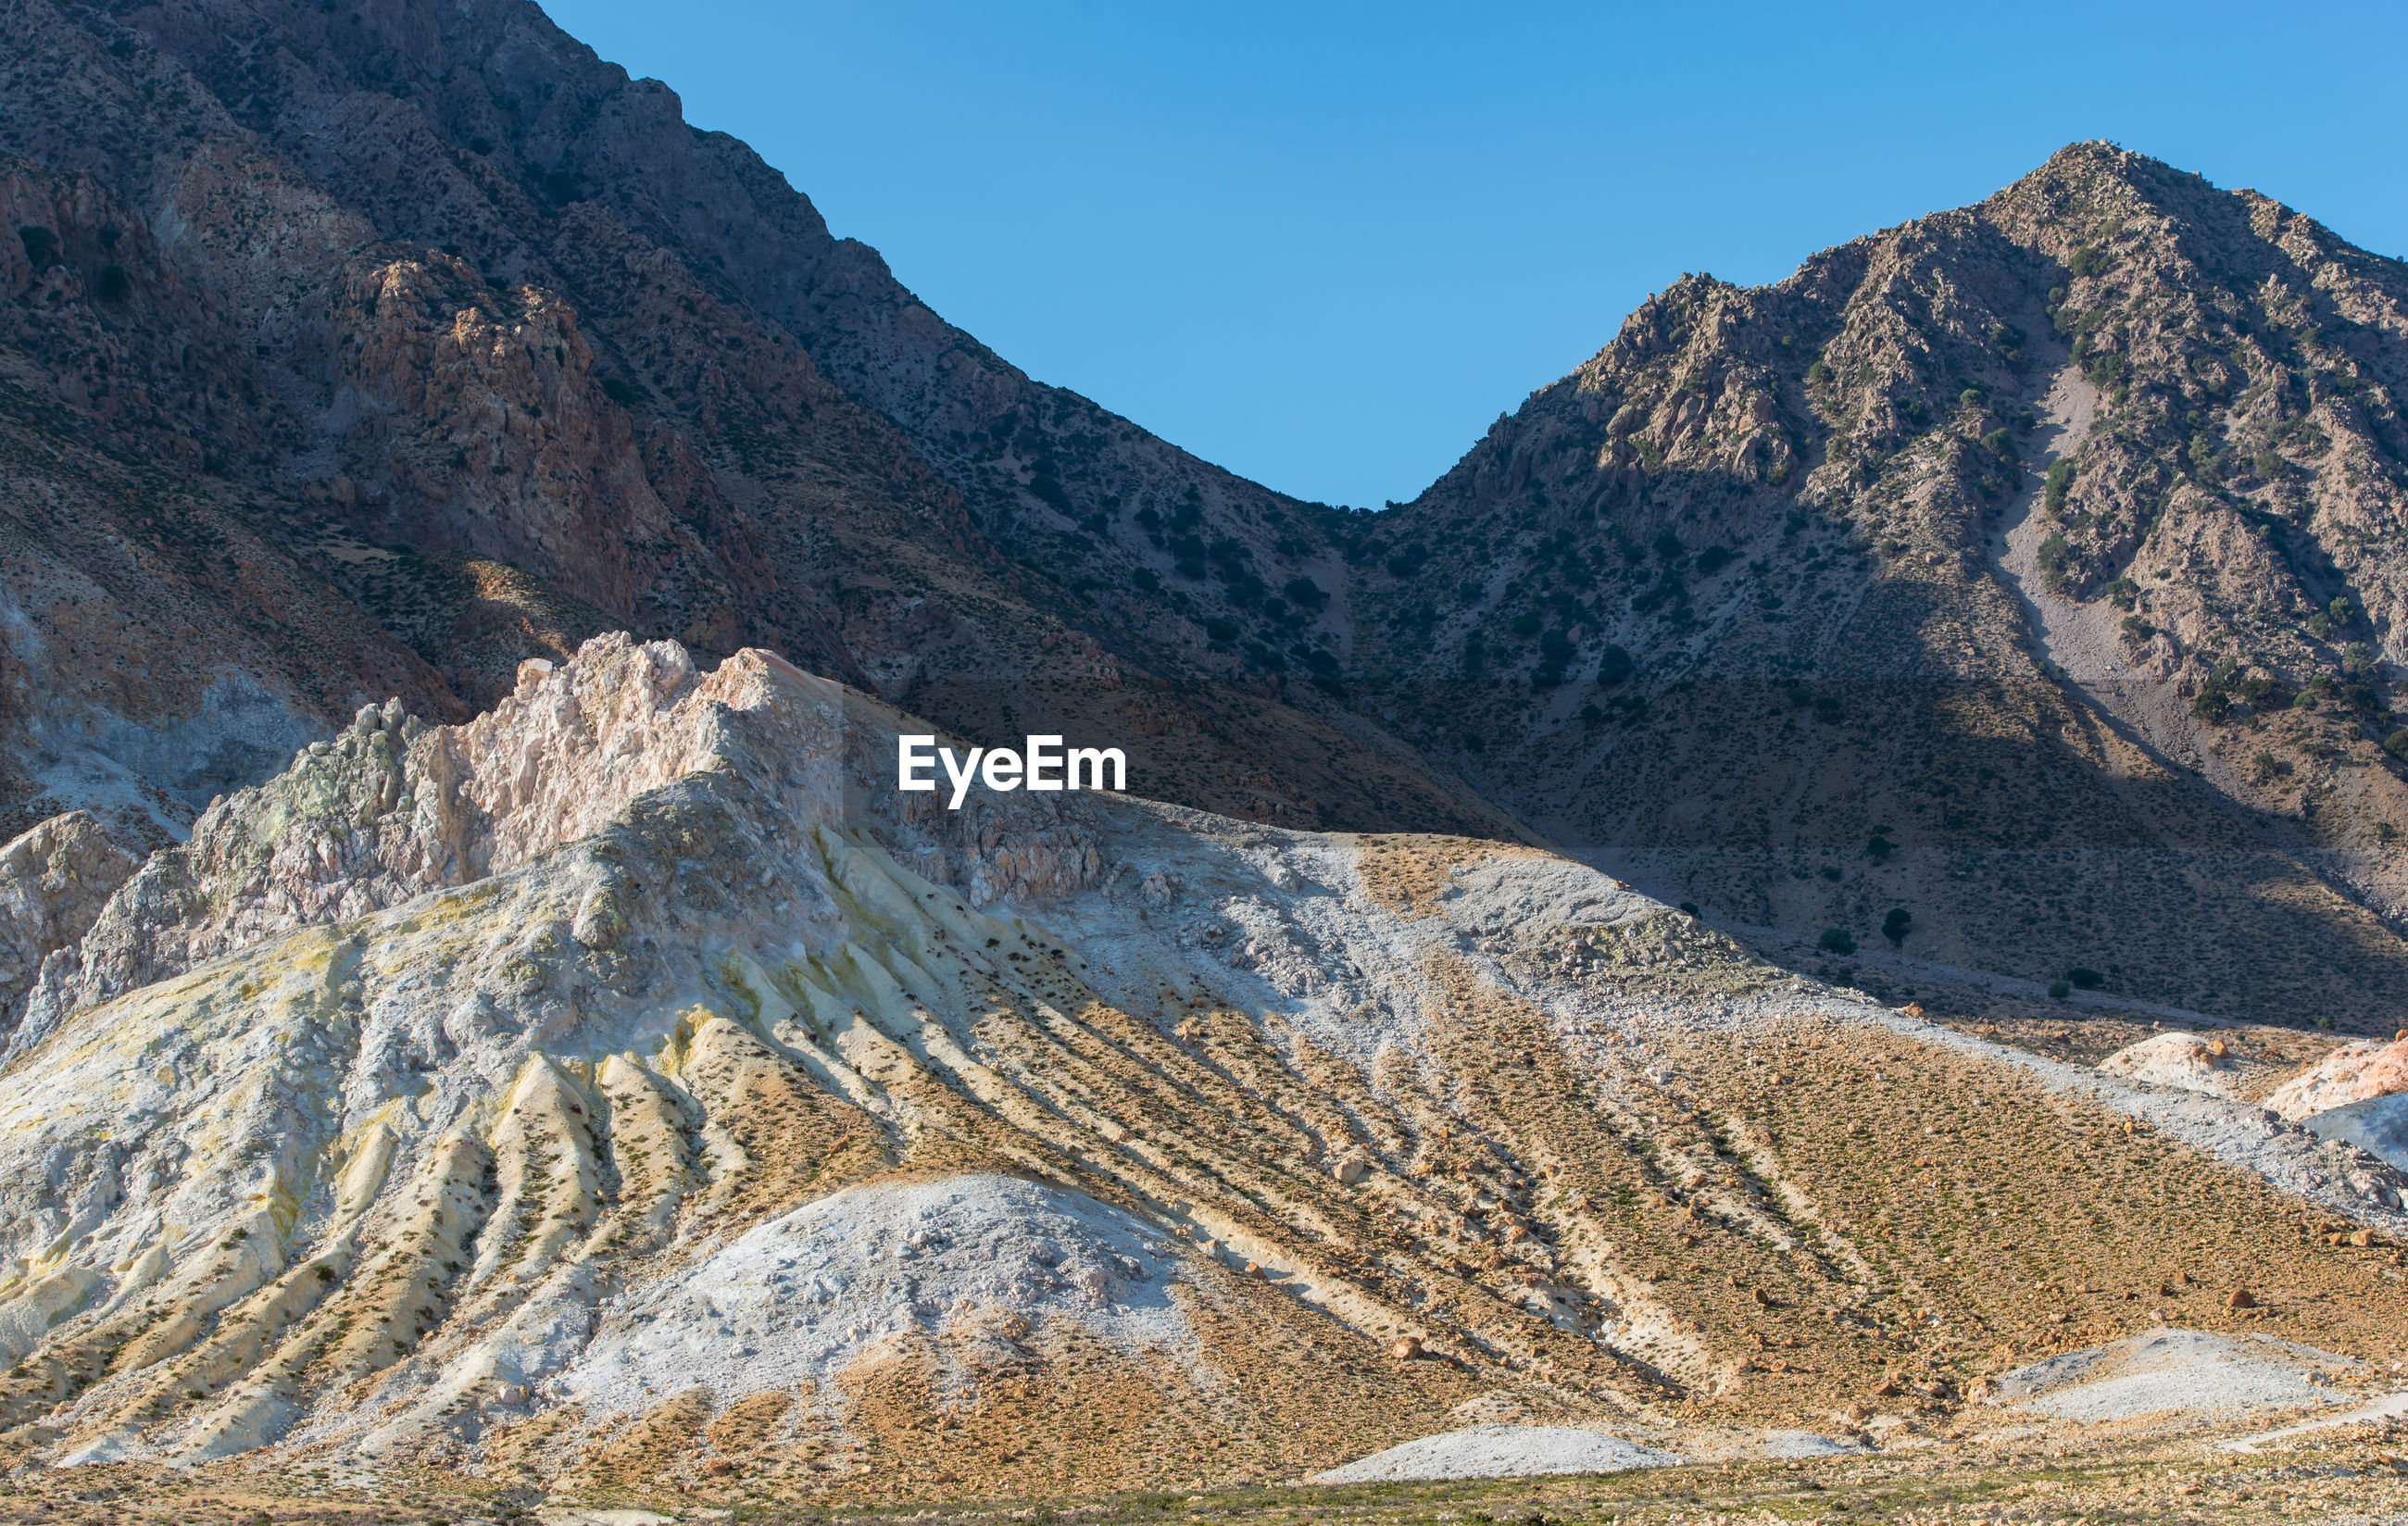 Volcanic crater stefanos in the lakki valley of the island nisyros greece